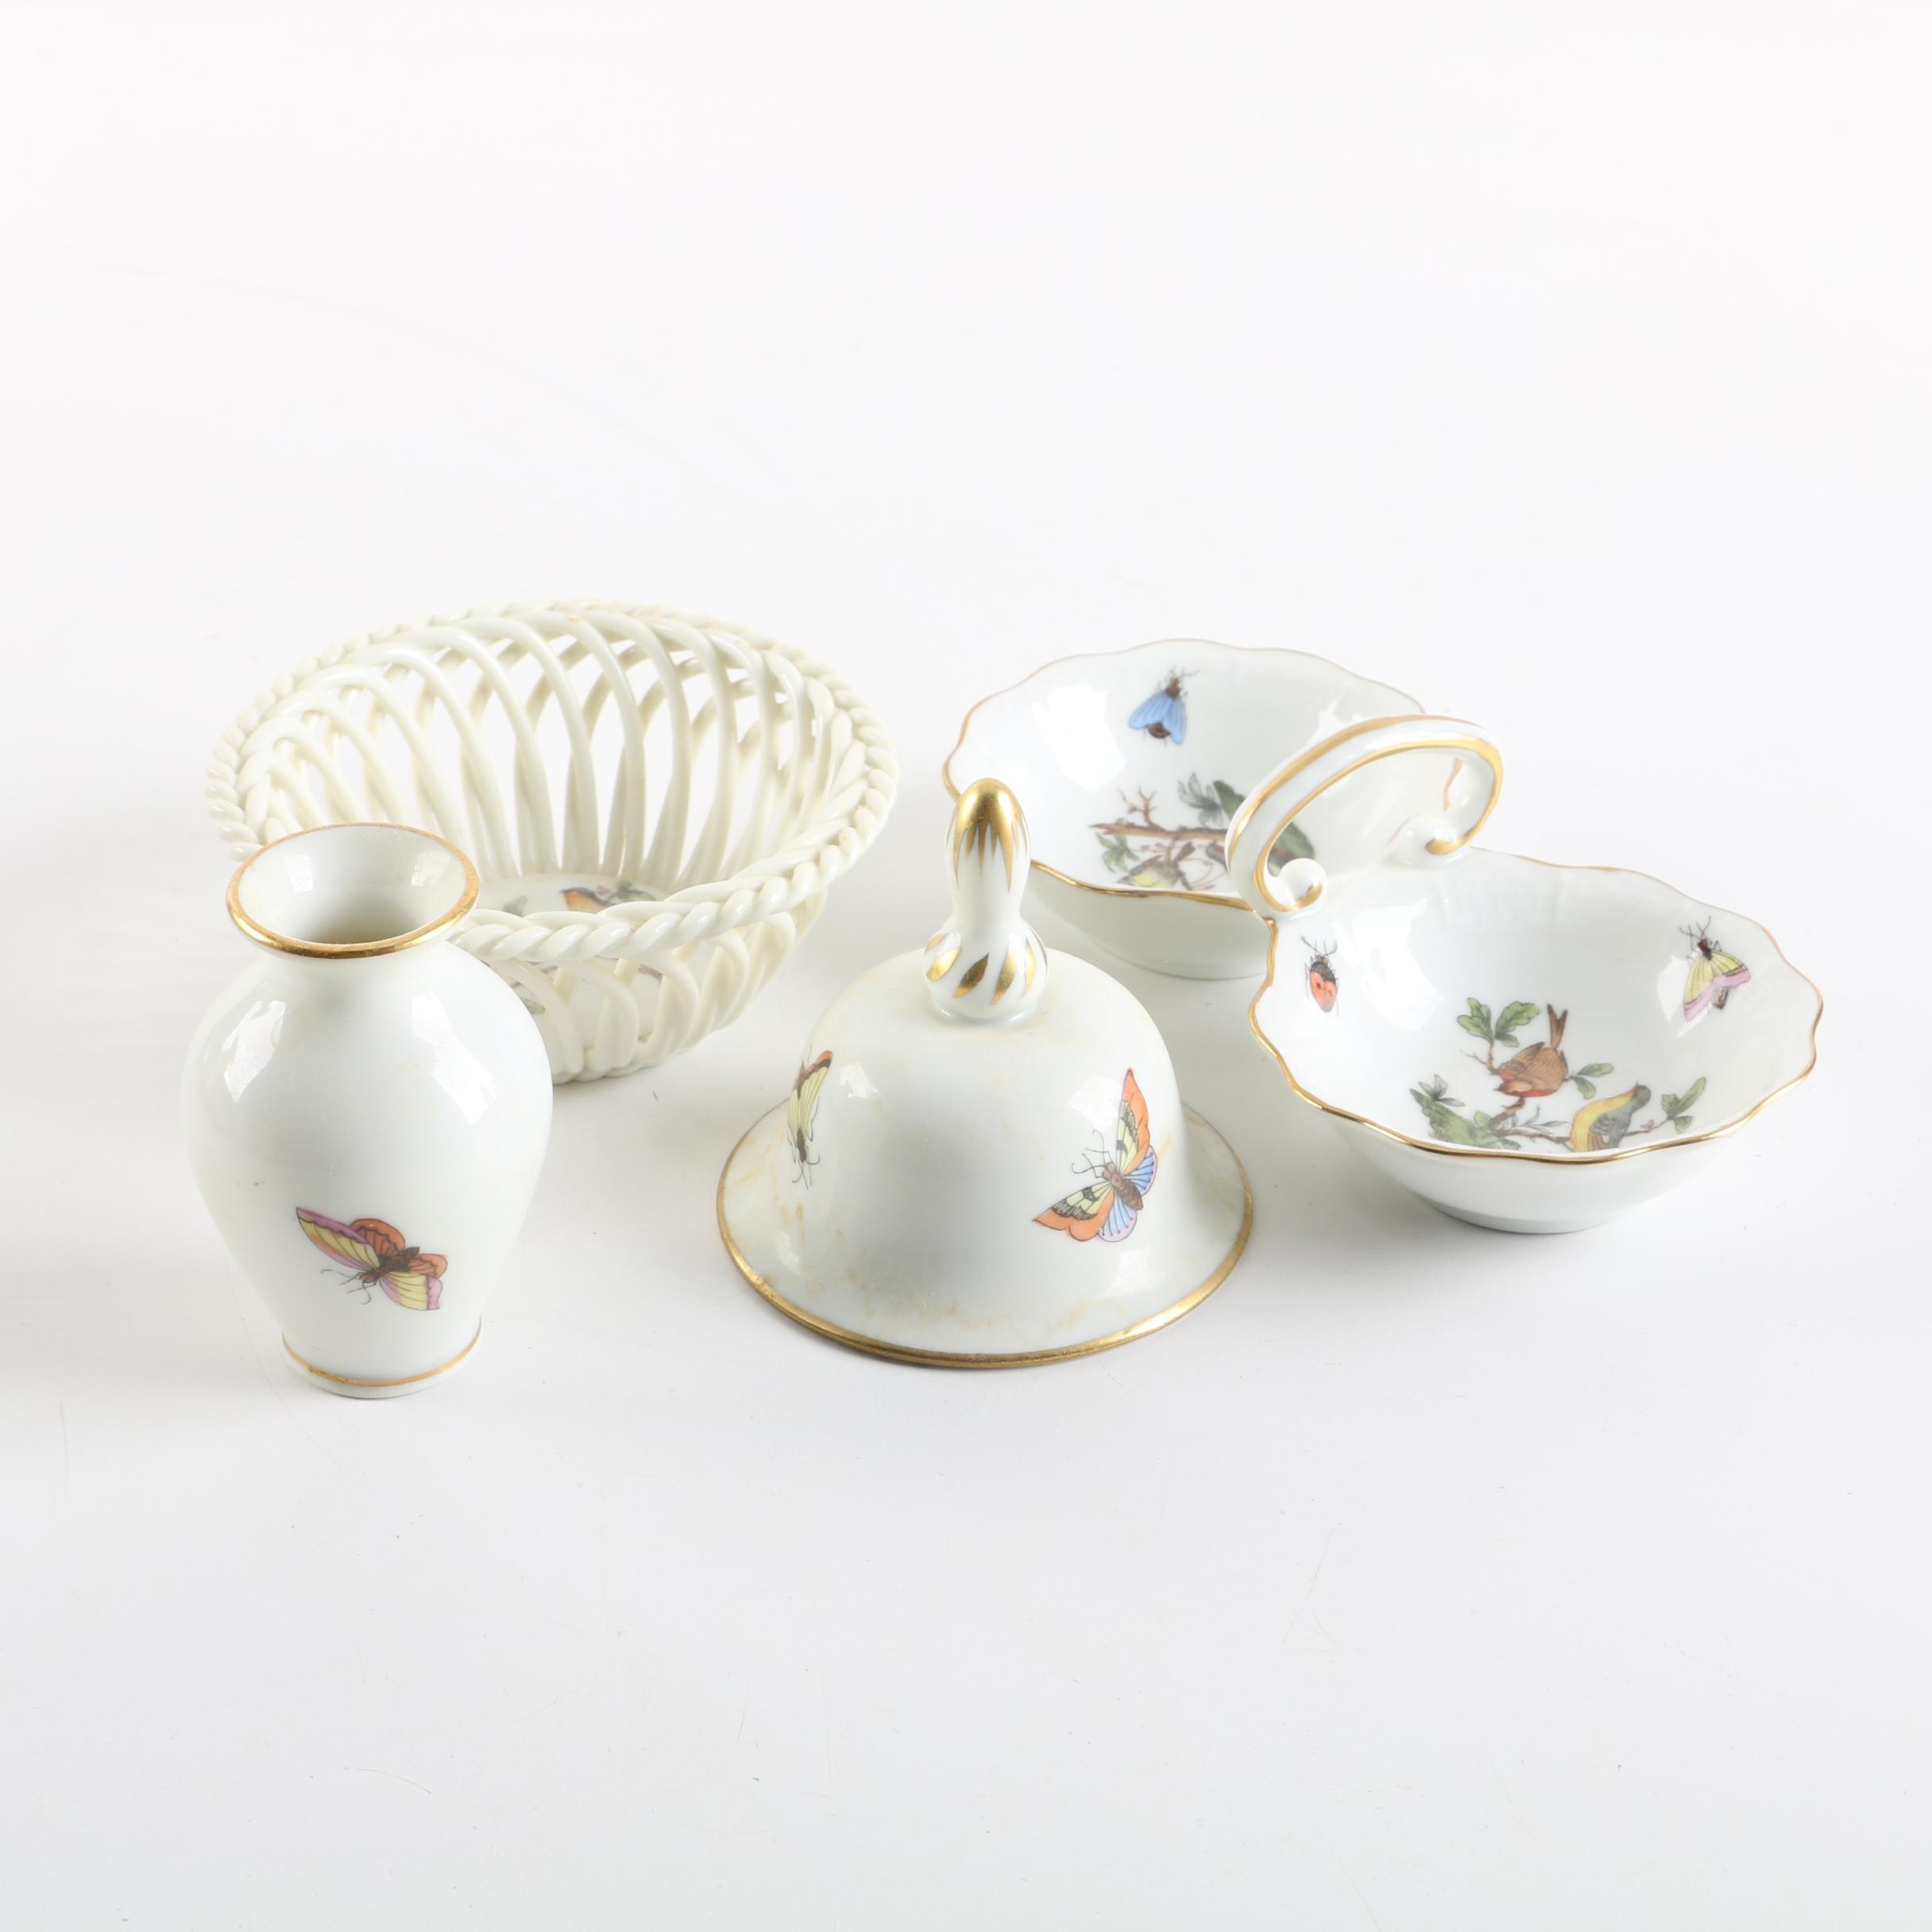 "Herend Hungary ""Rothschild Bird"" Porcelain Accent Pieces"